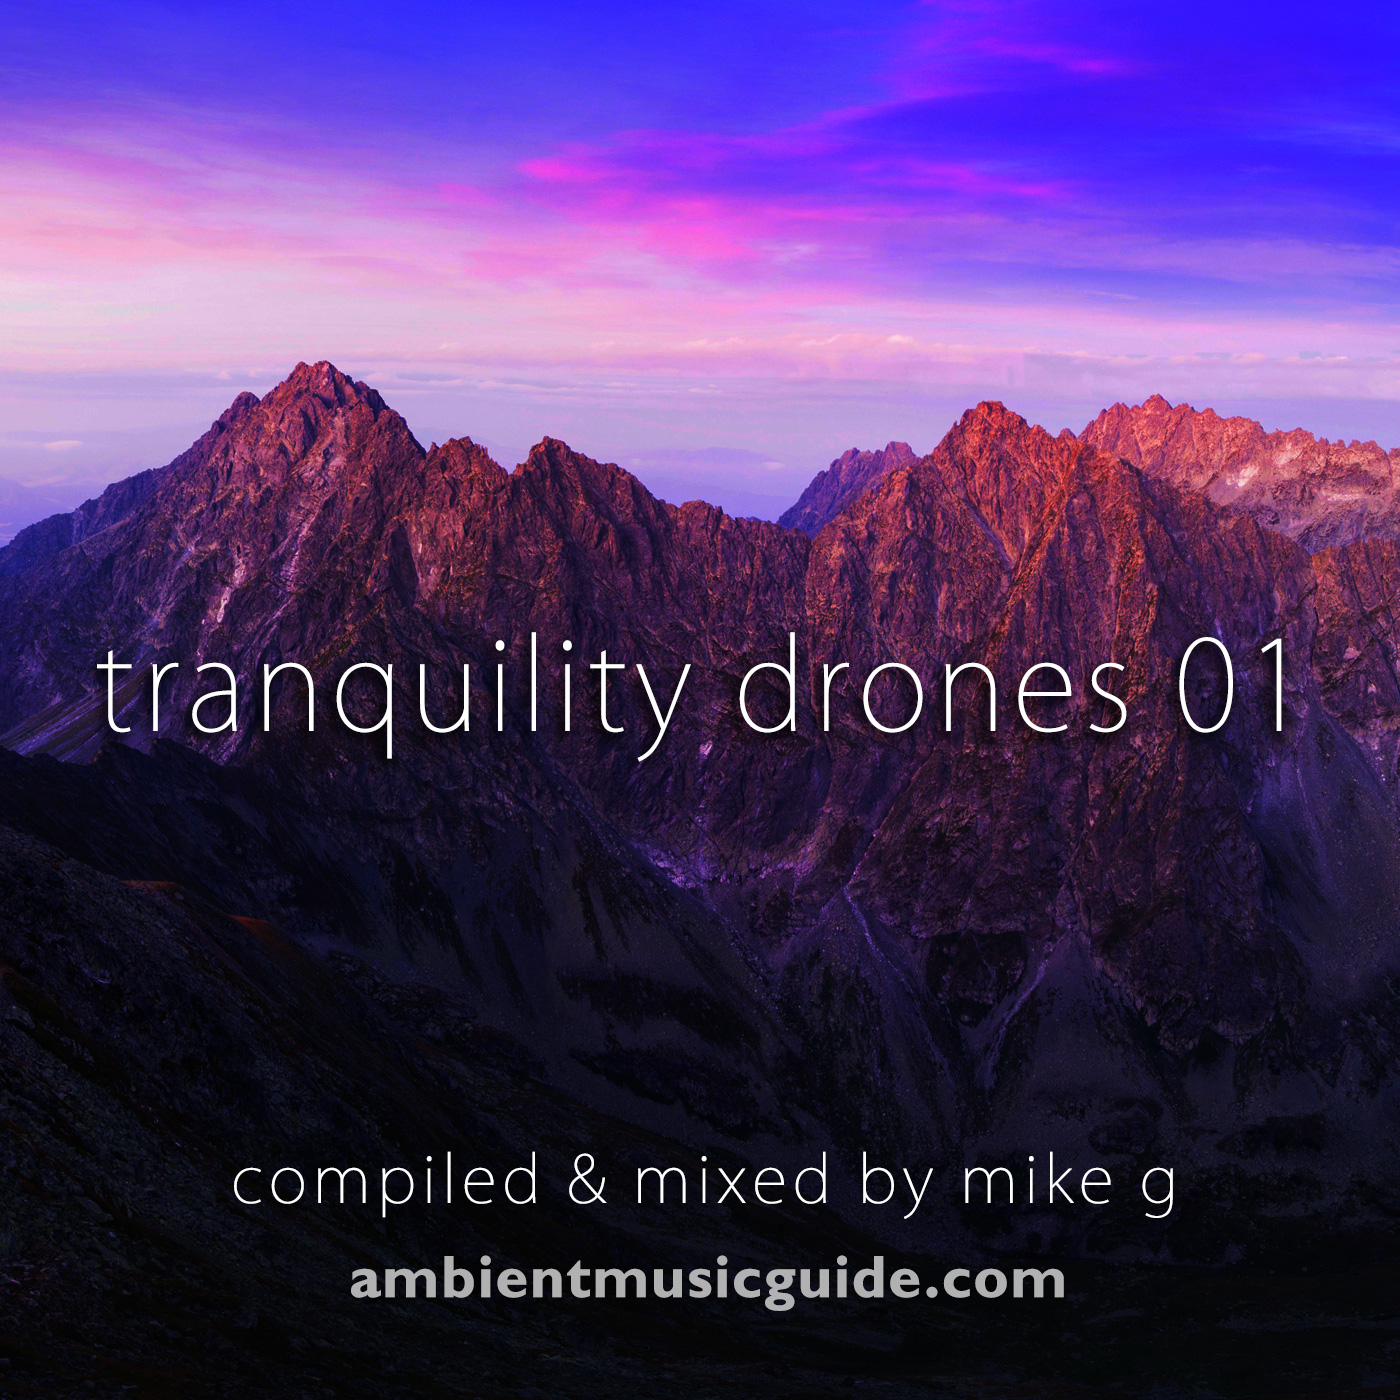 Tranquility Drones 01 mixed by Mike G